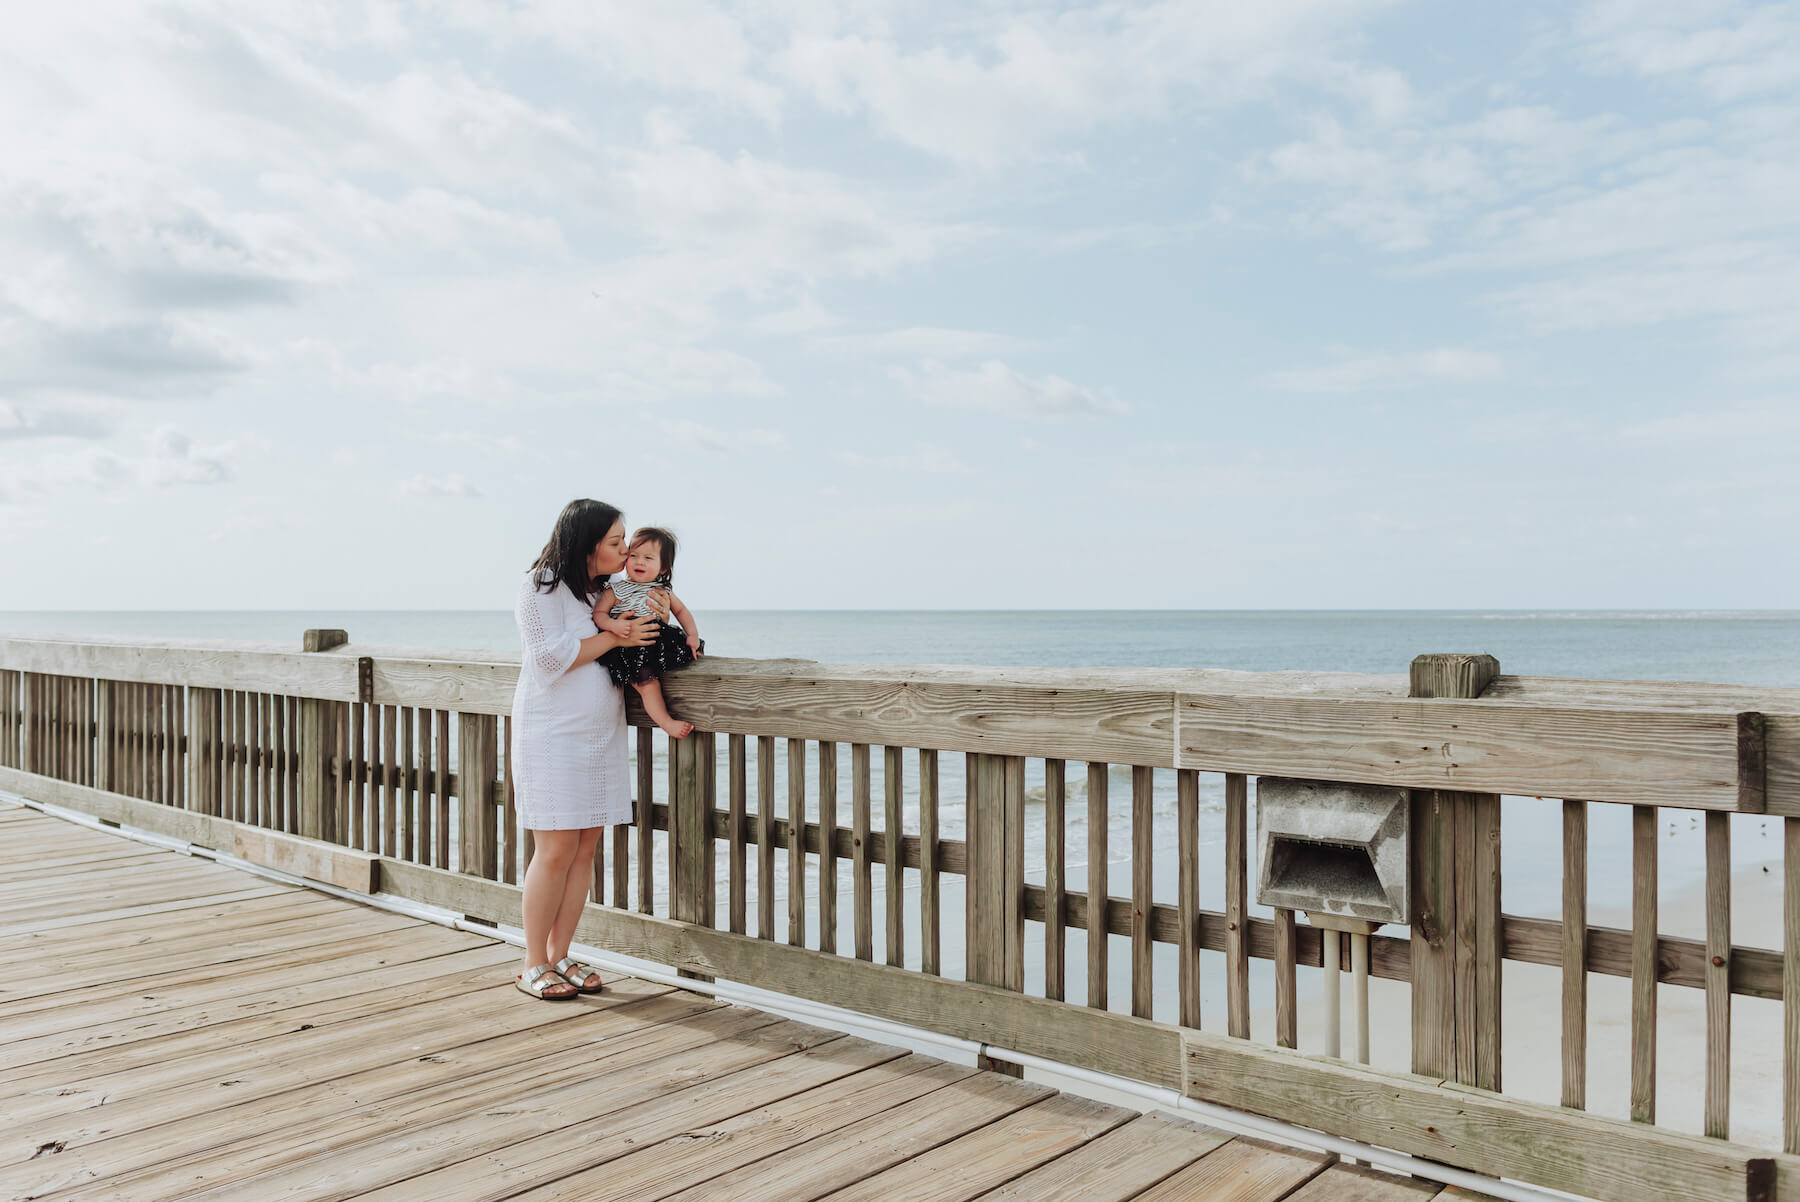 mother and infant daughter on a pier in Savannah, Georgia, United States of America